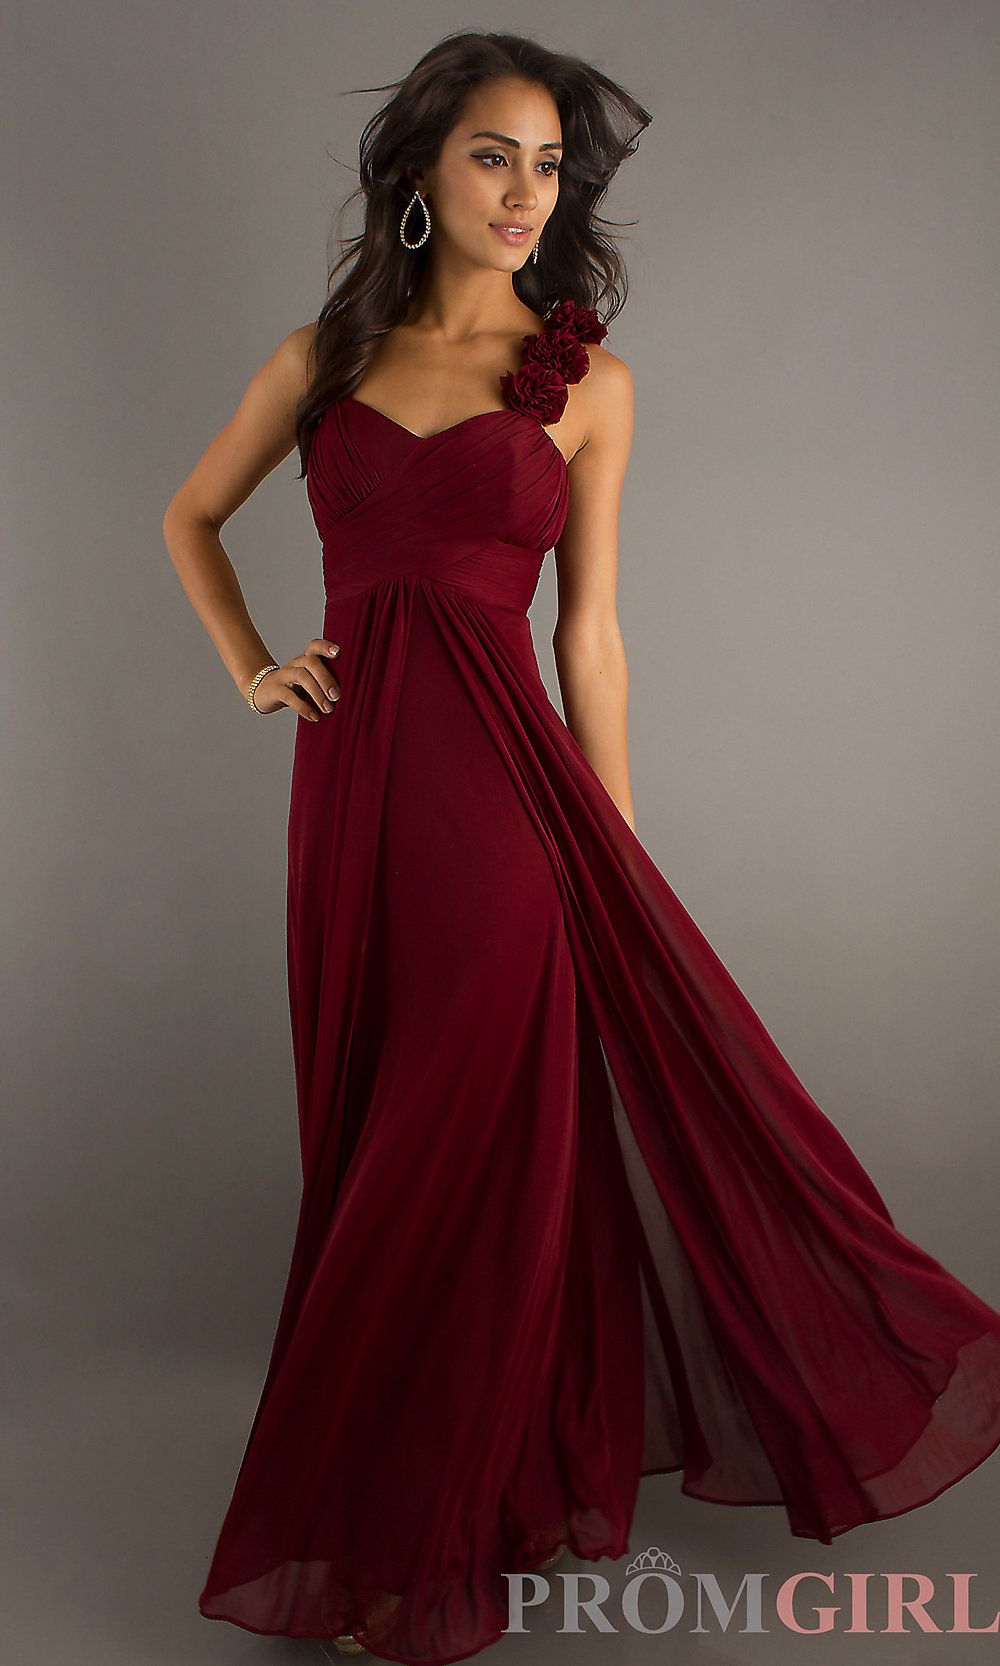 Sleeveless Full-Length Formal Sweetheart Dress | Cheap evening ...